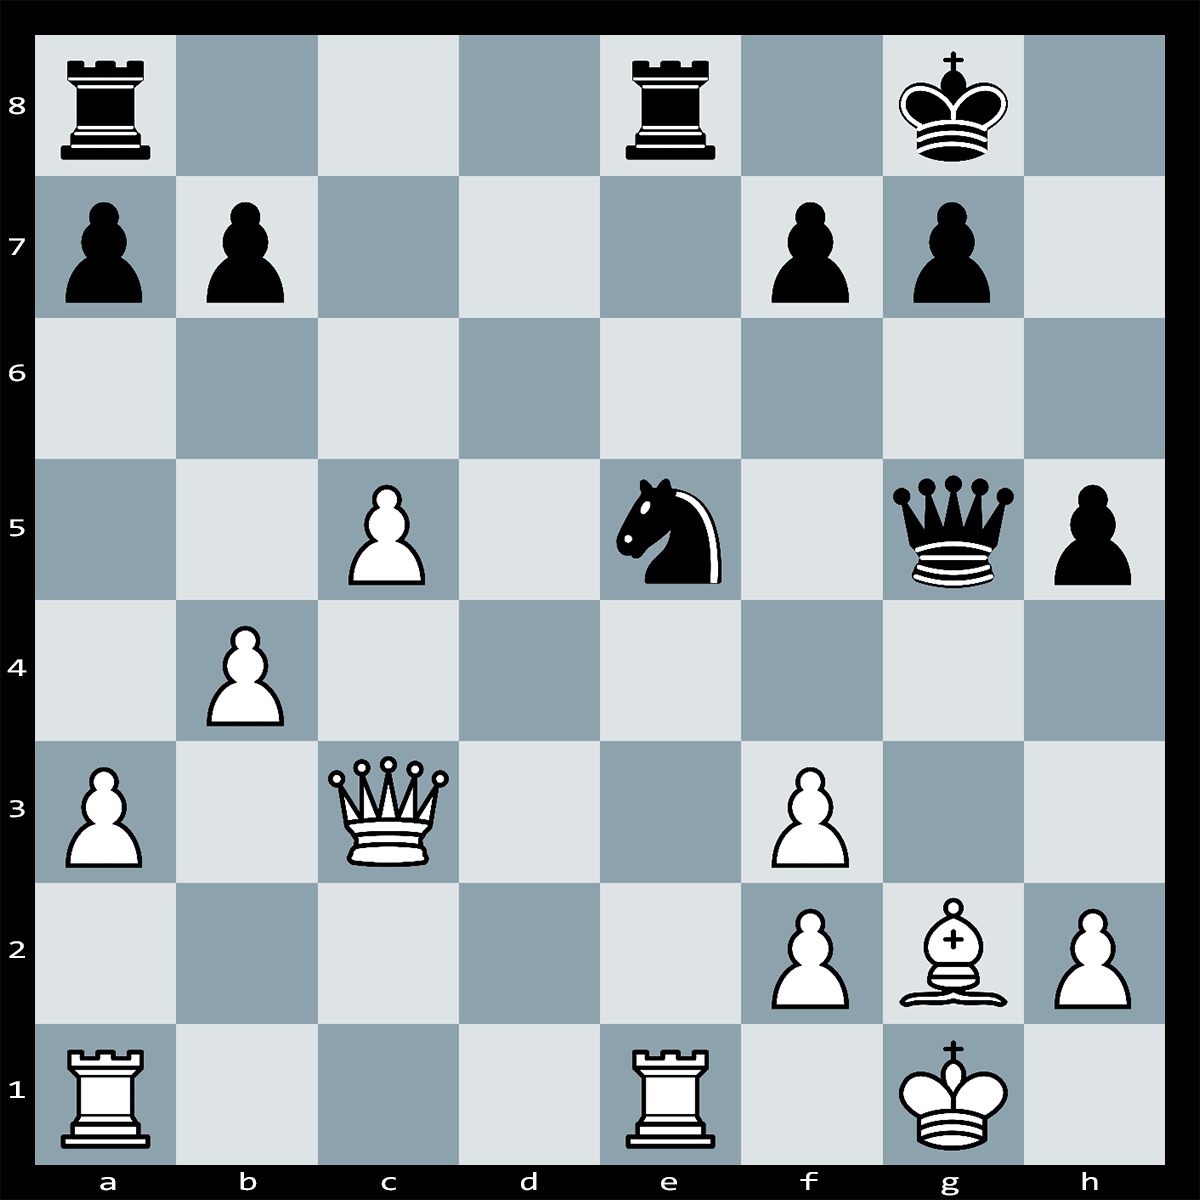 Chess Puzzles #344 | What's the most devastating way for White to conclude the attack? lvanchuk - Anand, Monte Carlo (Blindfold) 2007.